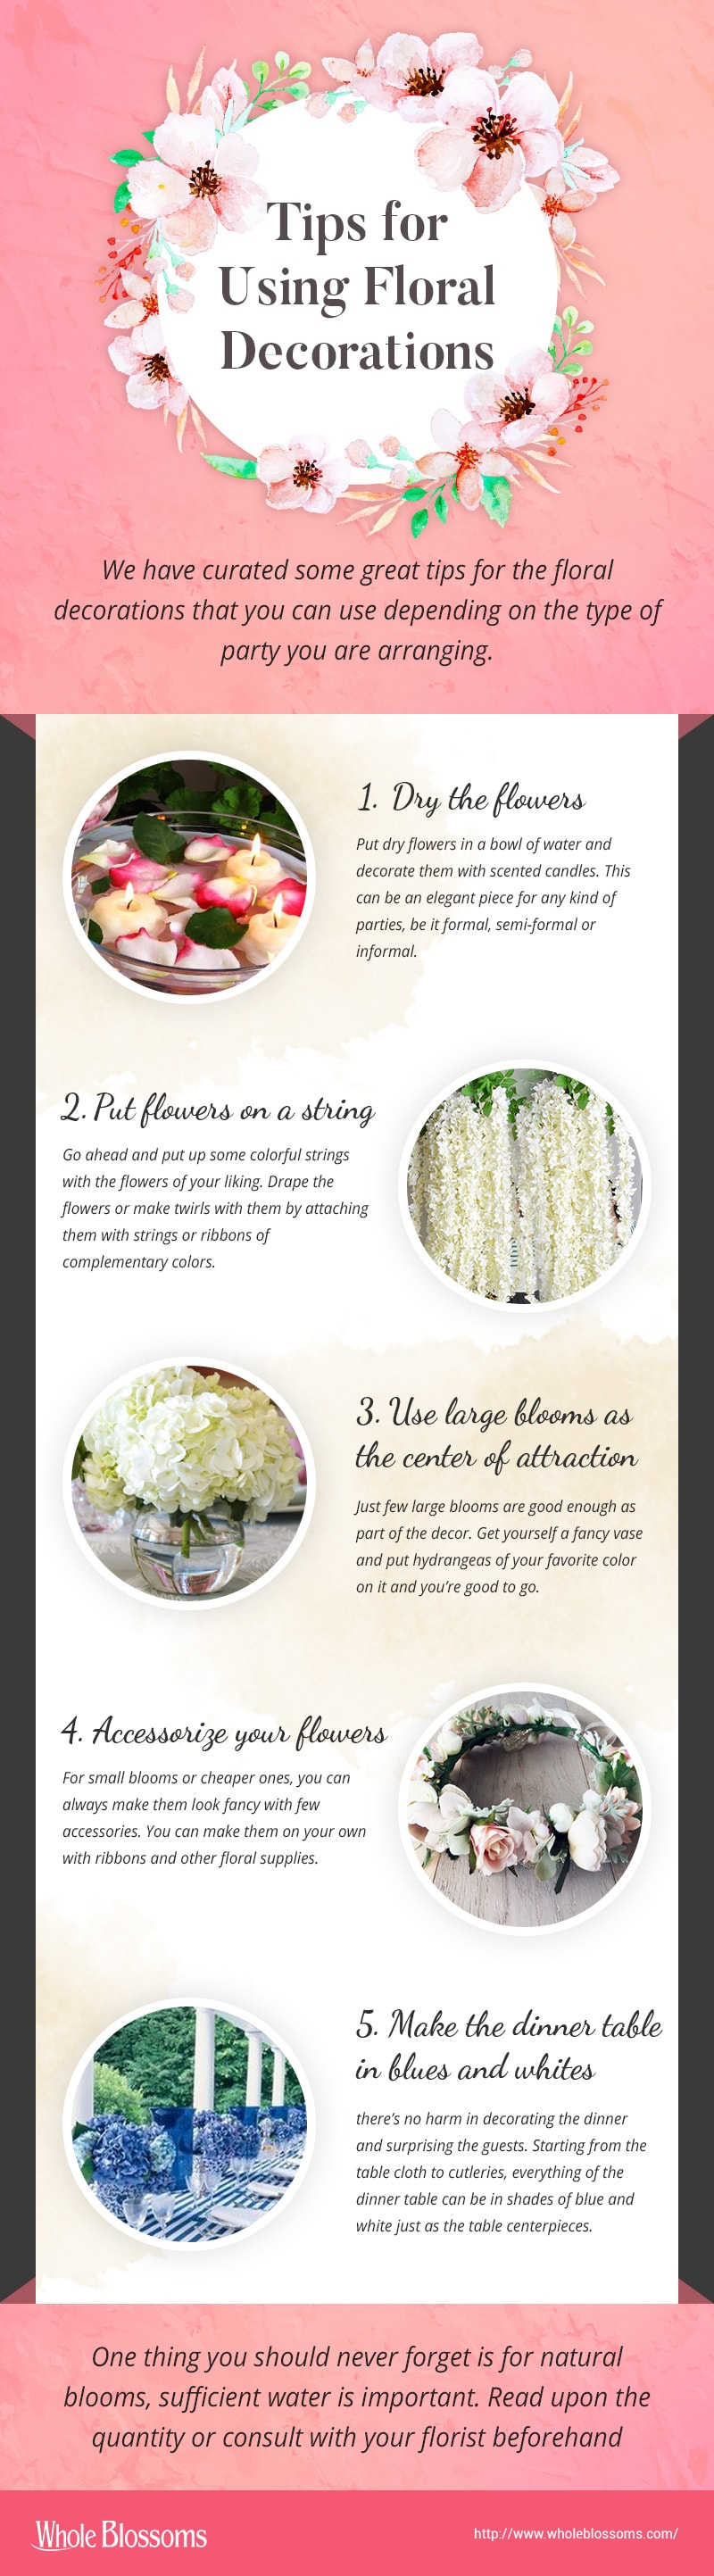 Tips for using floral decorations at your party